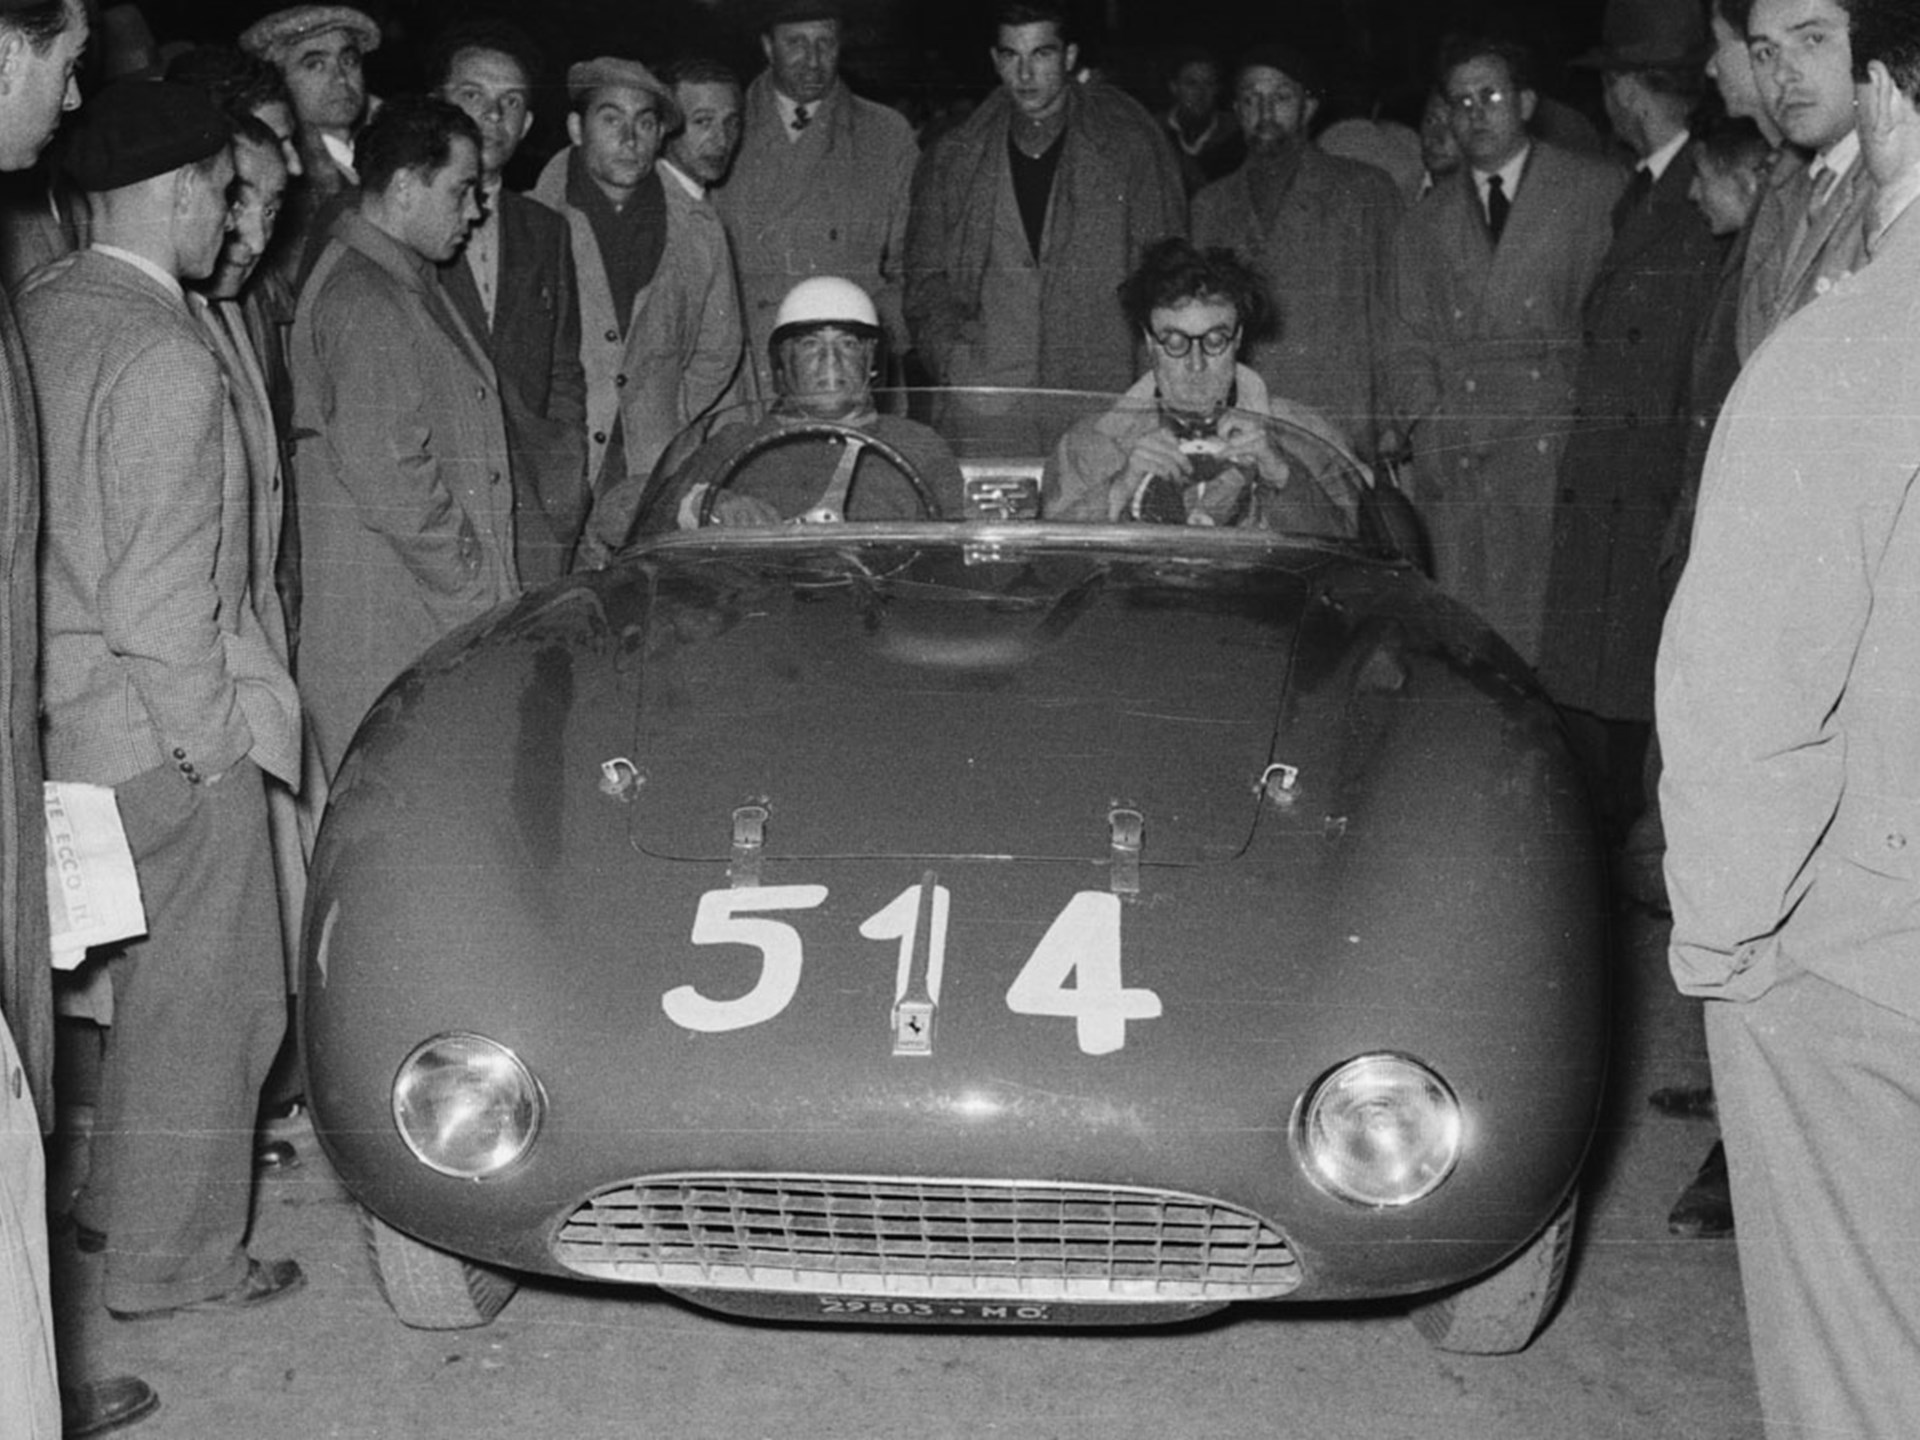 Driver Alberico Cacciari alongside R.H. Bill Mason in chassis 0272 at the 1953 Mille Miglia.